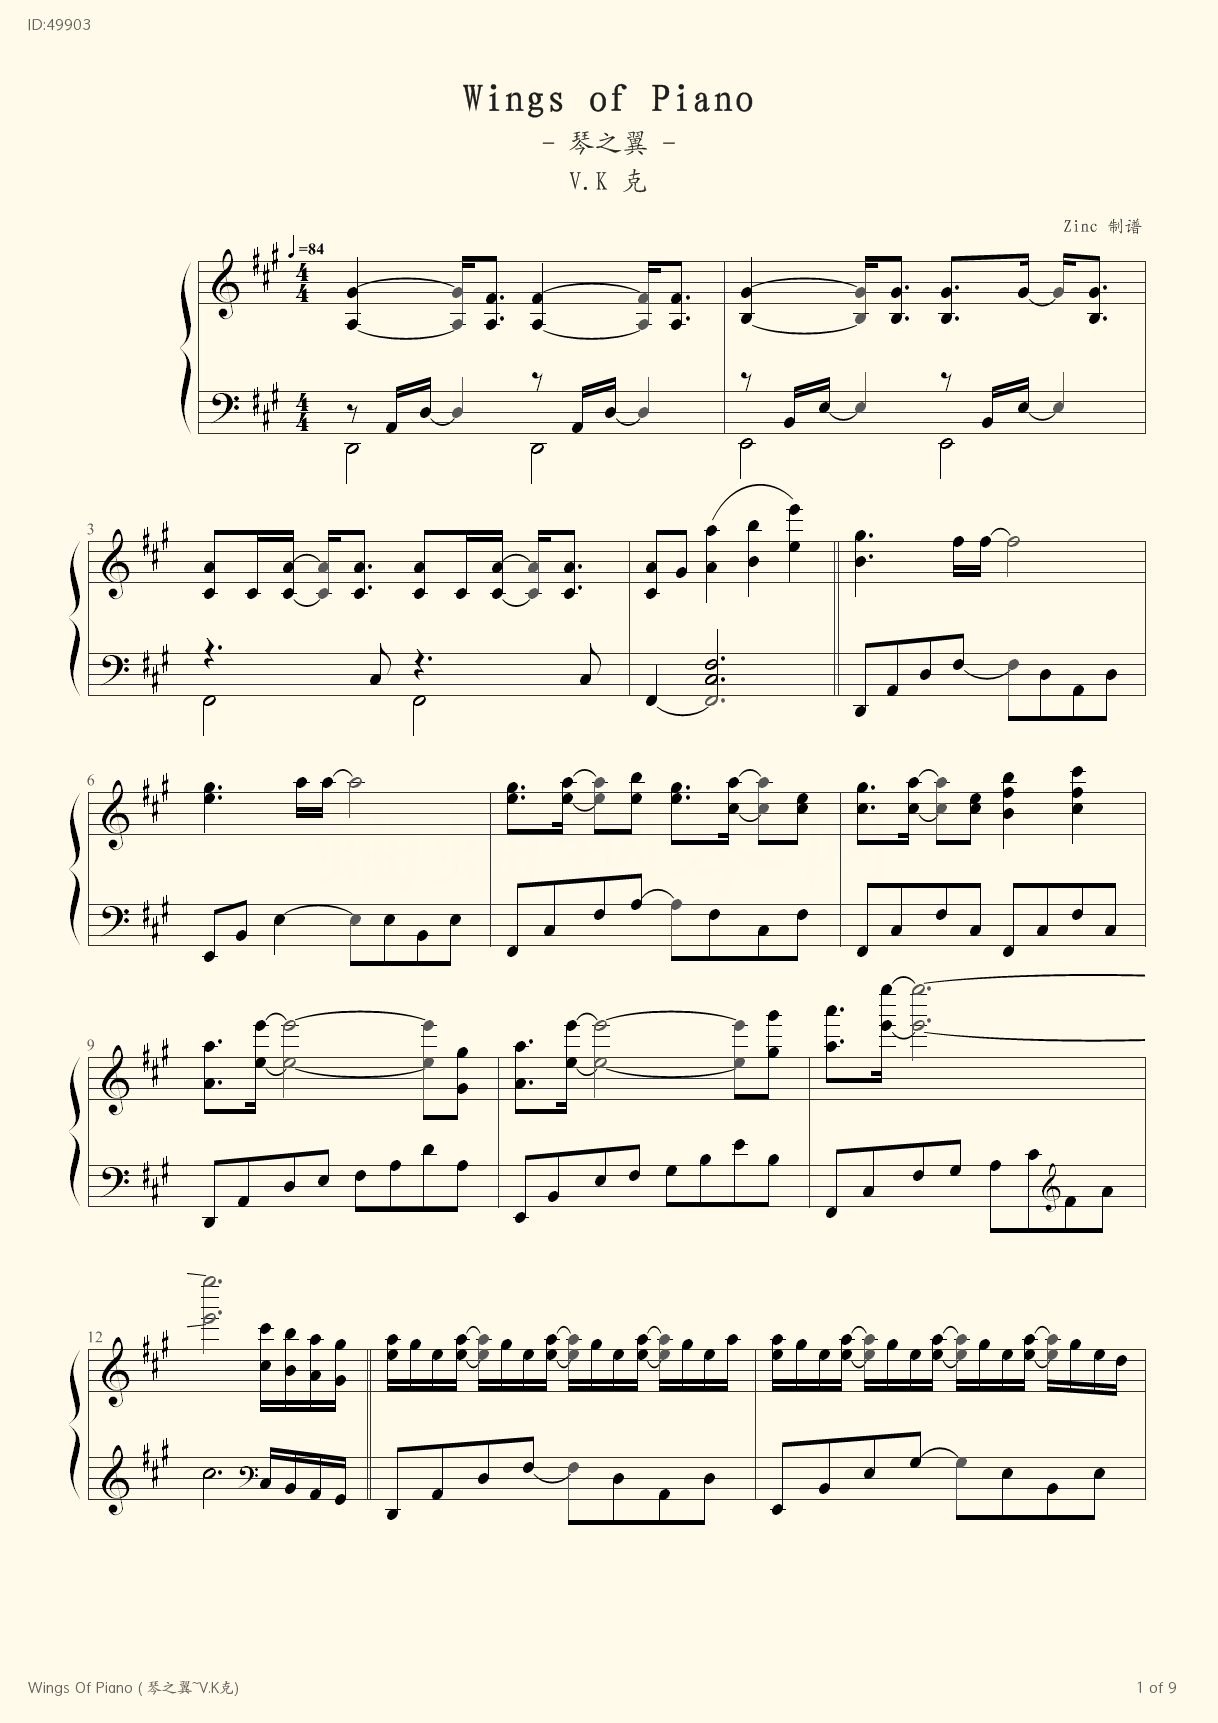 Wings Of Piano V K  - V.K G - first page